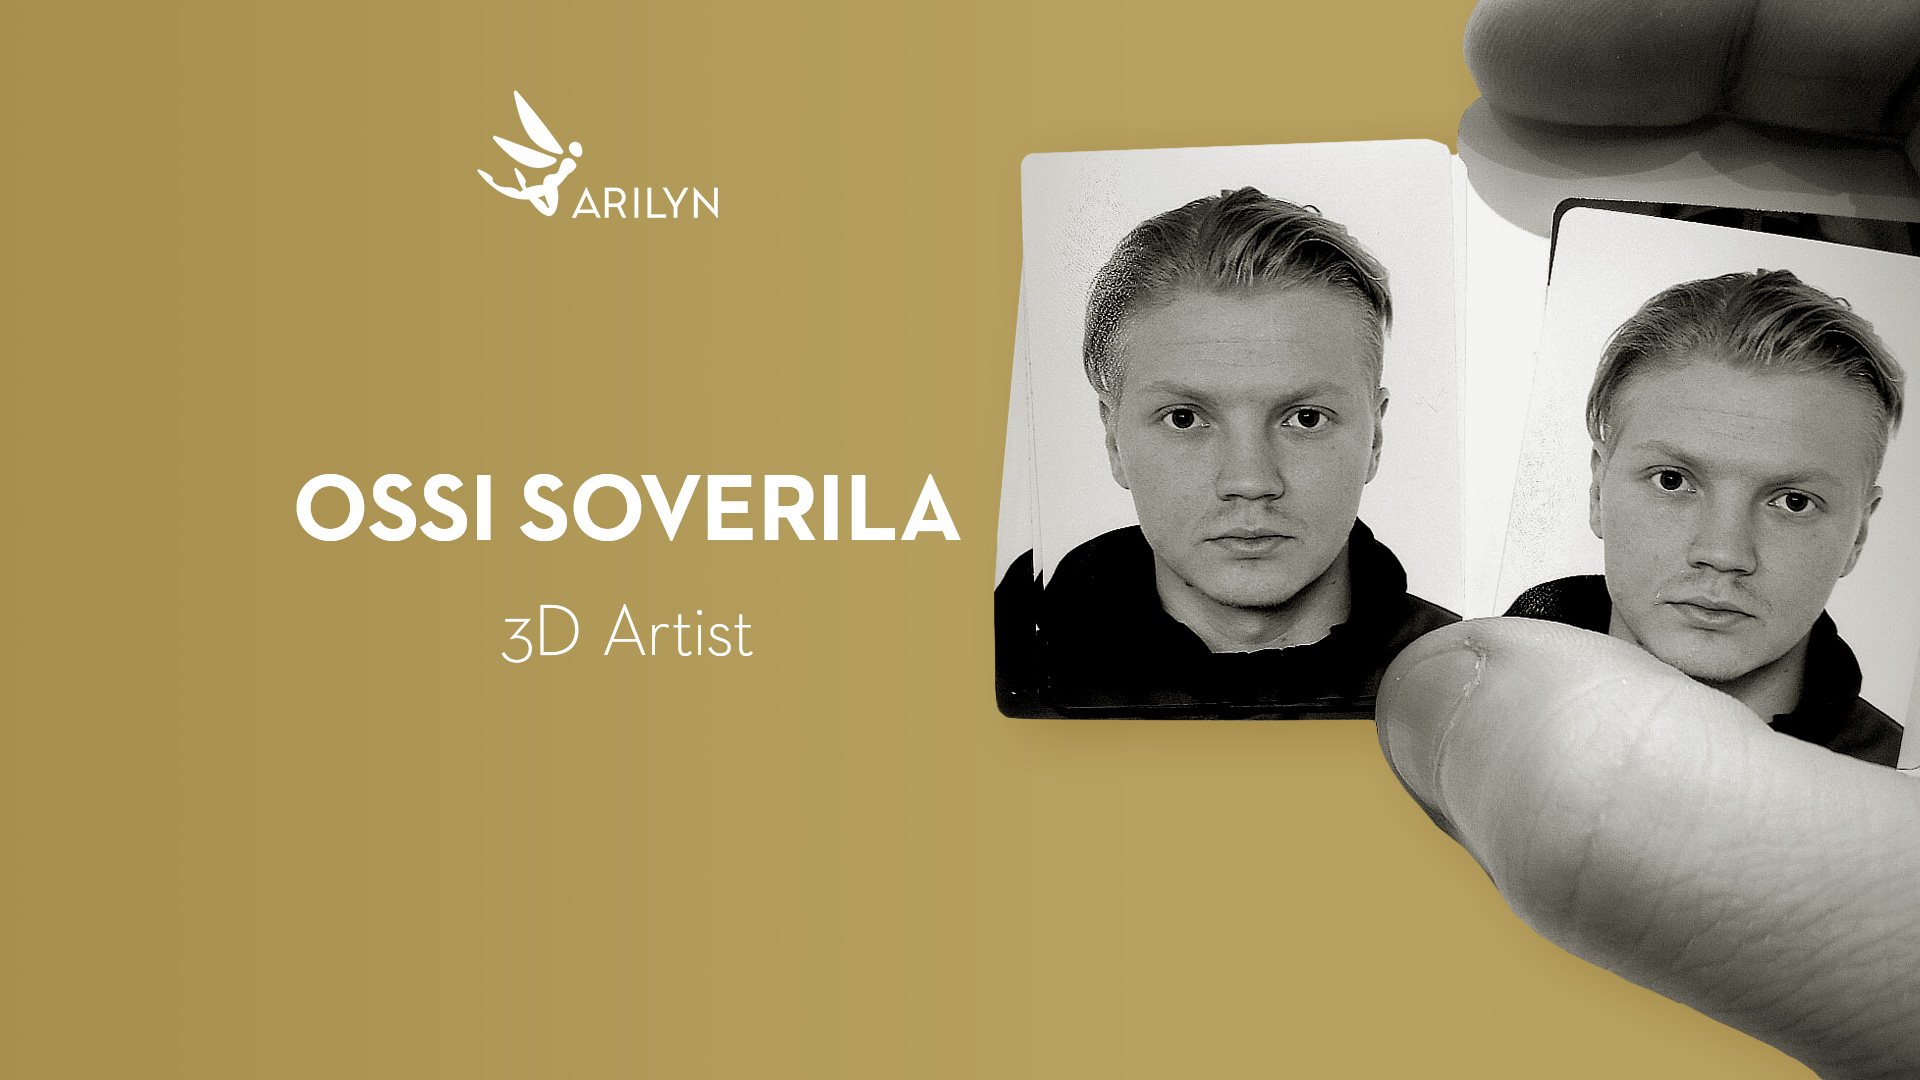 Get to know Arilyn - Ossi Soverila, 3D Artist